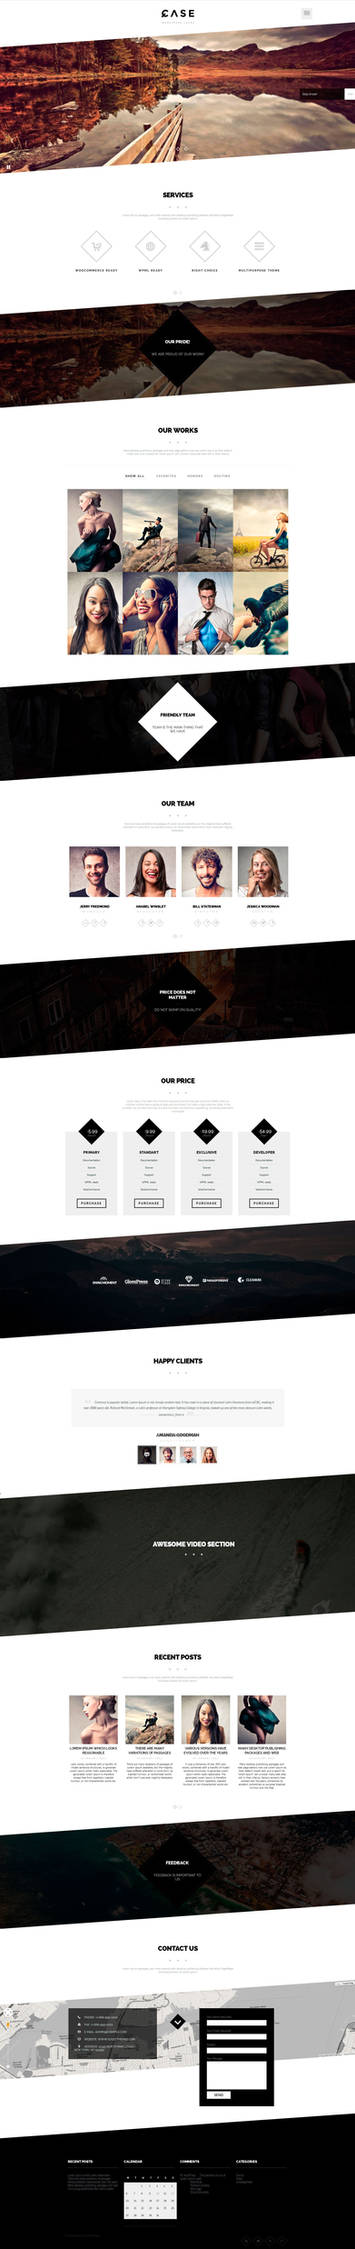 Case - One-page WP Theme